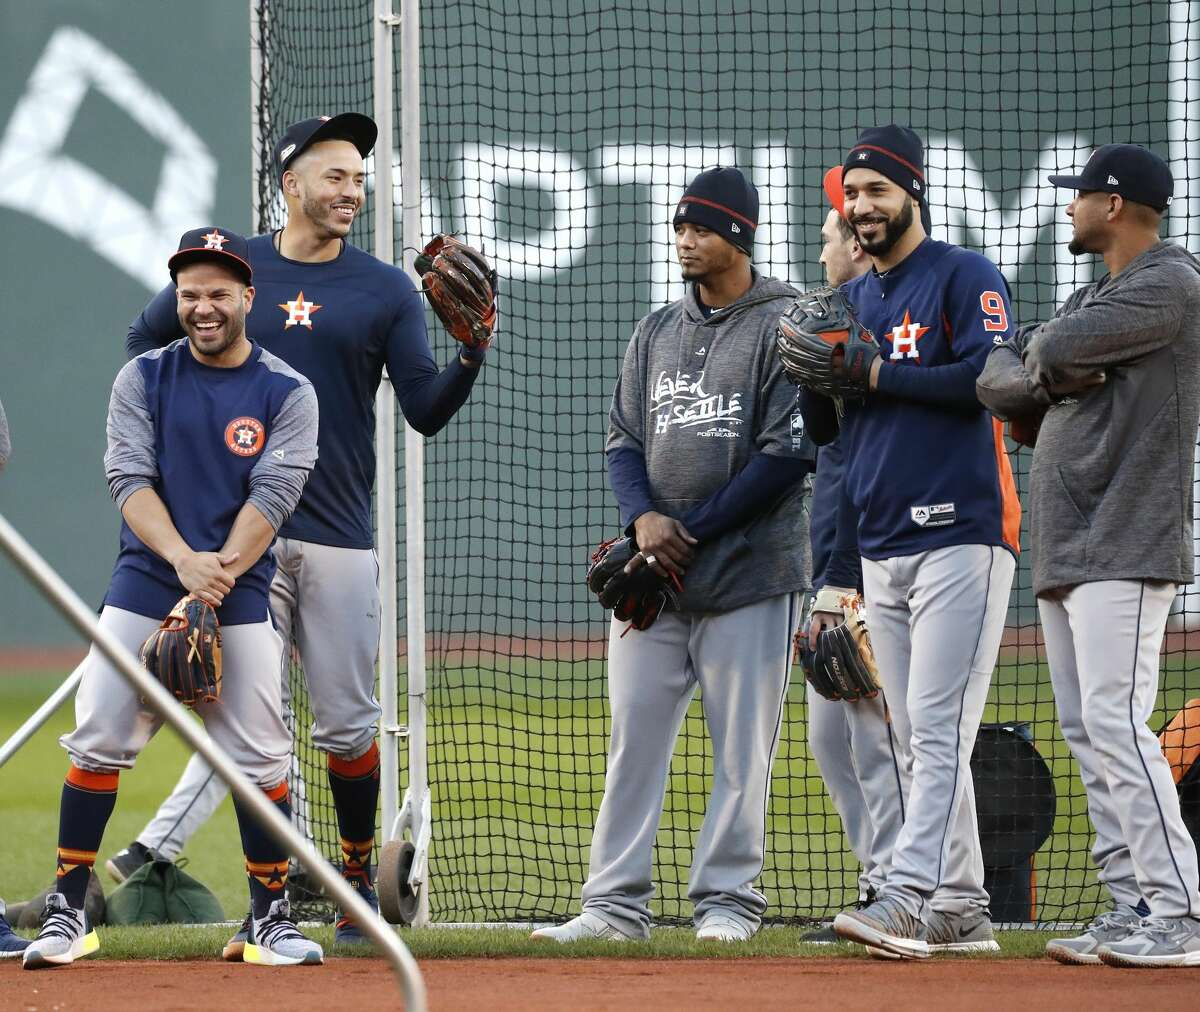 Houston Astros Jose Altuve, Carlos Correa, Martin Maldonado, Marwin Gonzalez, and Yuli Gurriel watch batting practice as the Astros worked out at Fenway Park, Friday, October 12, 2018, in Boston , in preparation for Game 1 of the ALCS against the Boston Red Sox.